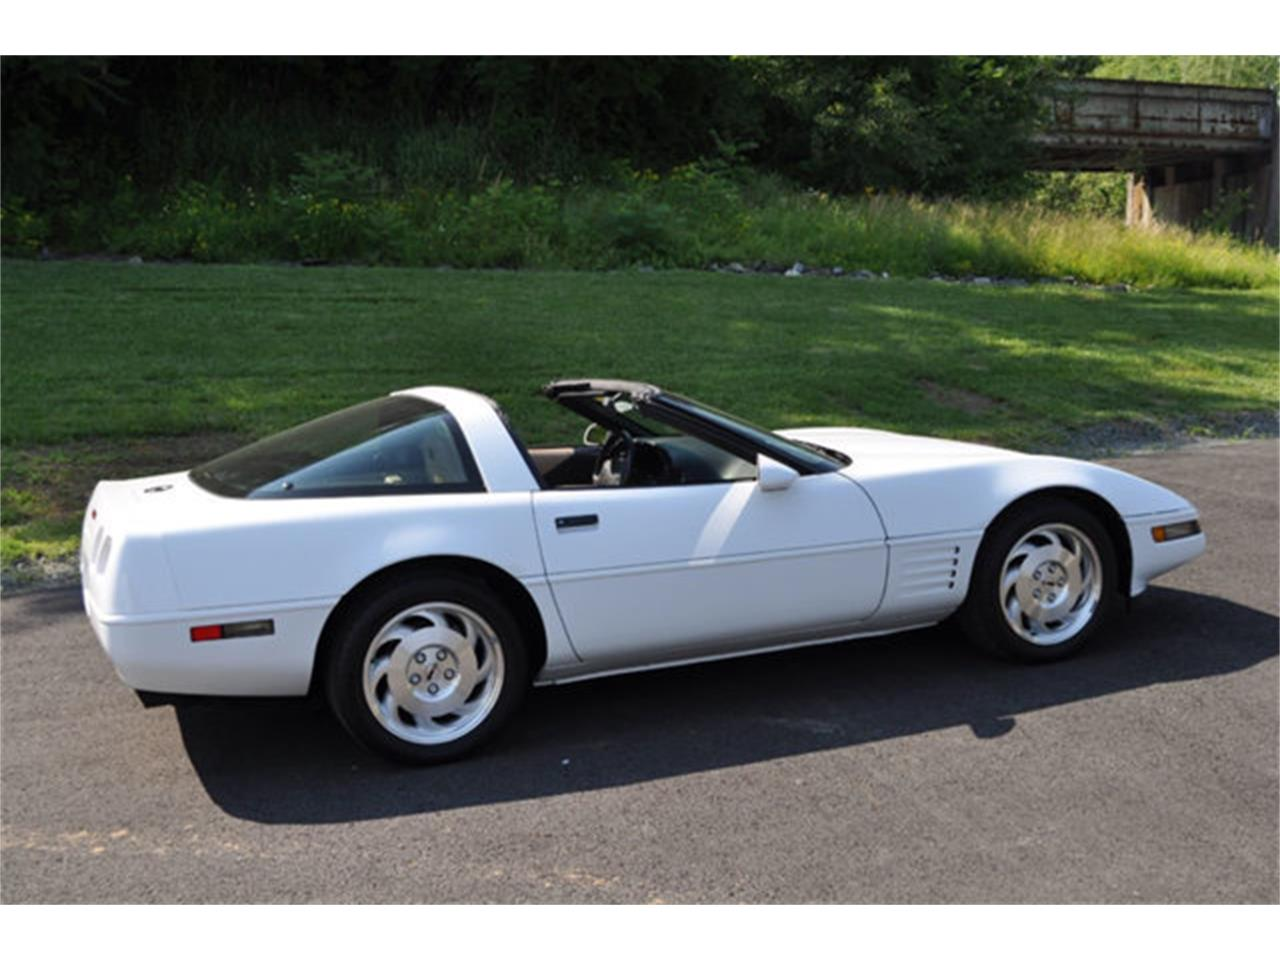 Large Picture of '94 Chevrolet Corvette located in Clifton Park New York - $12,999.00 - QETU